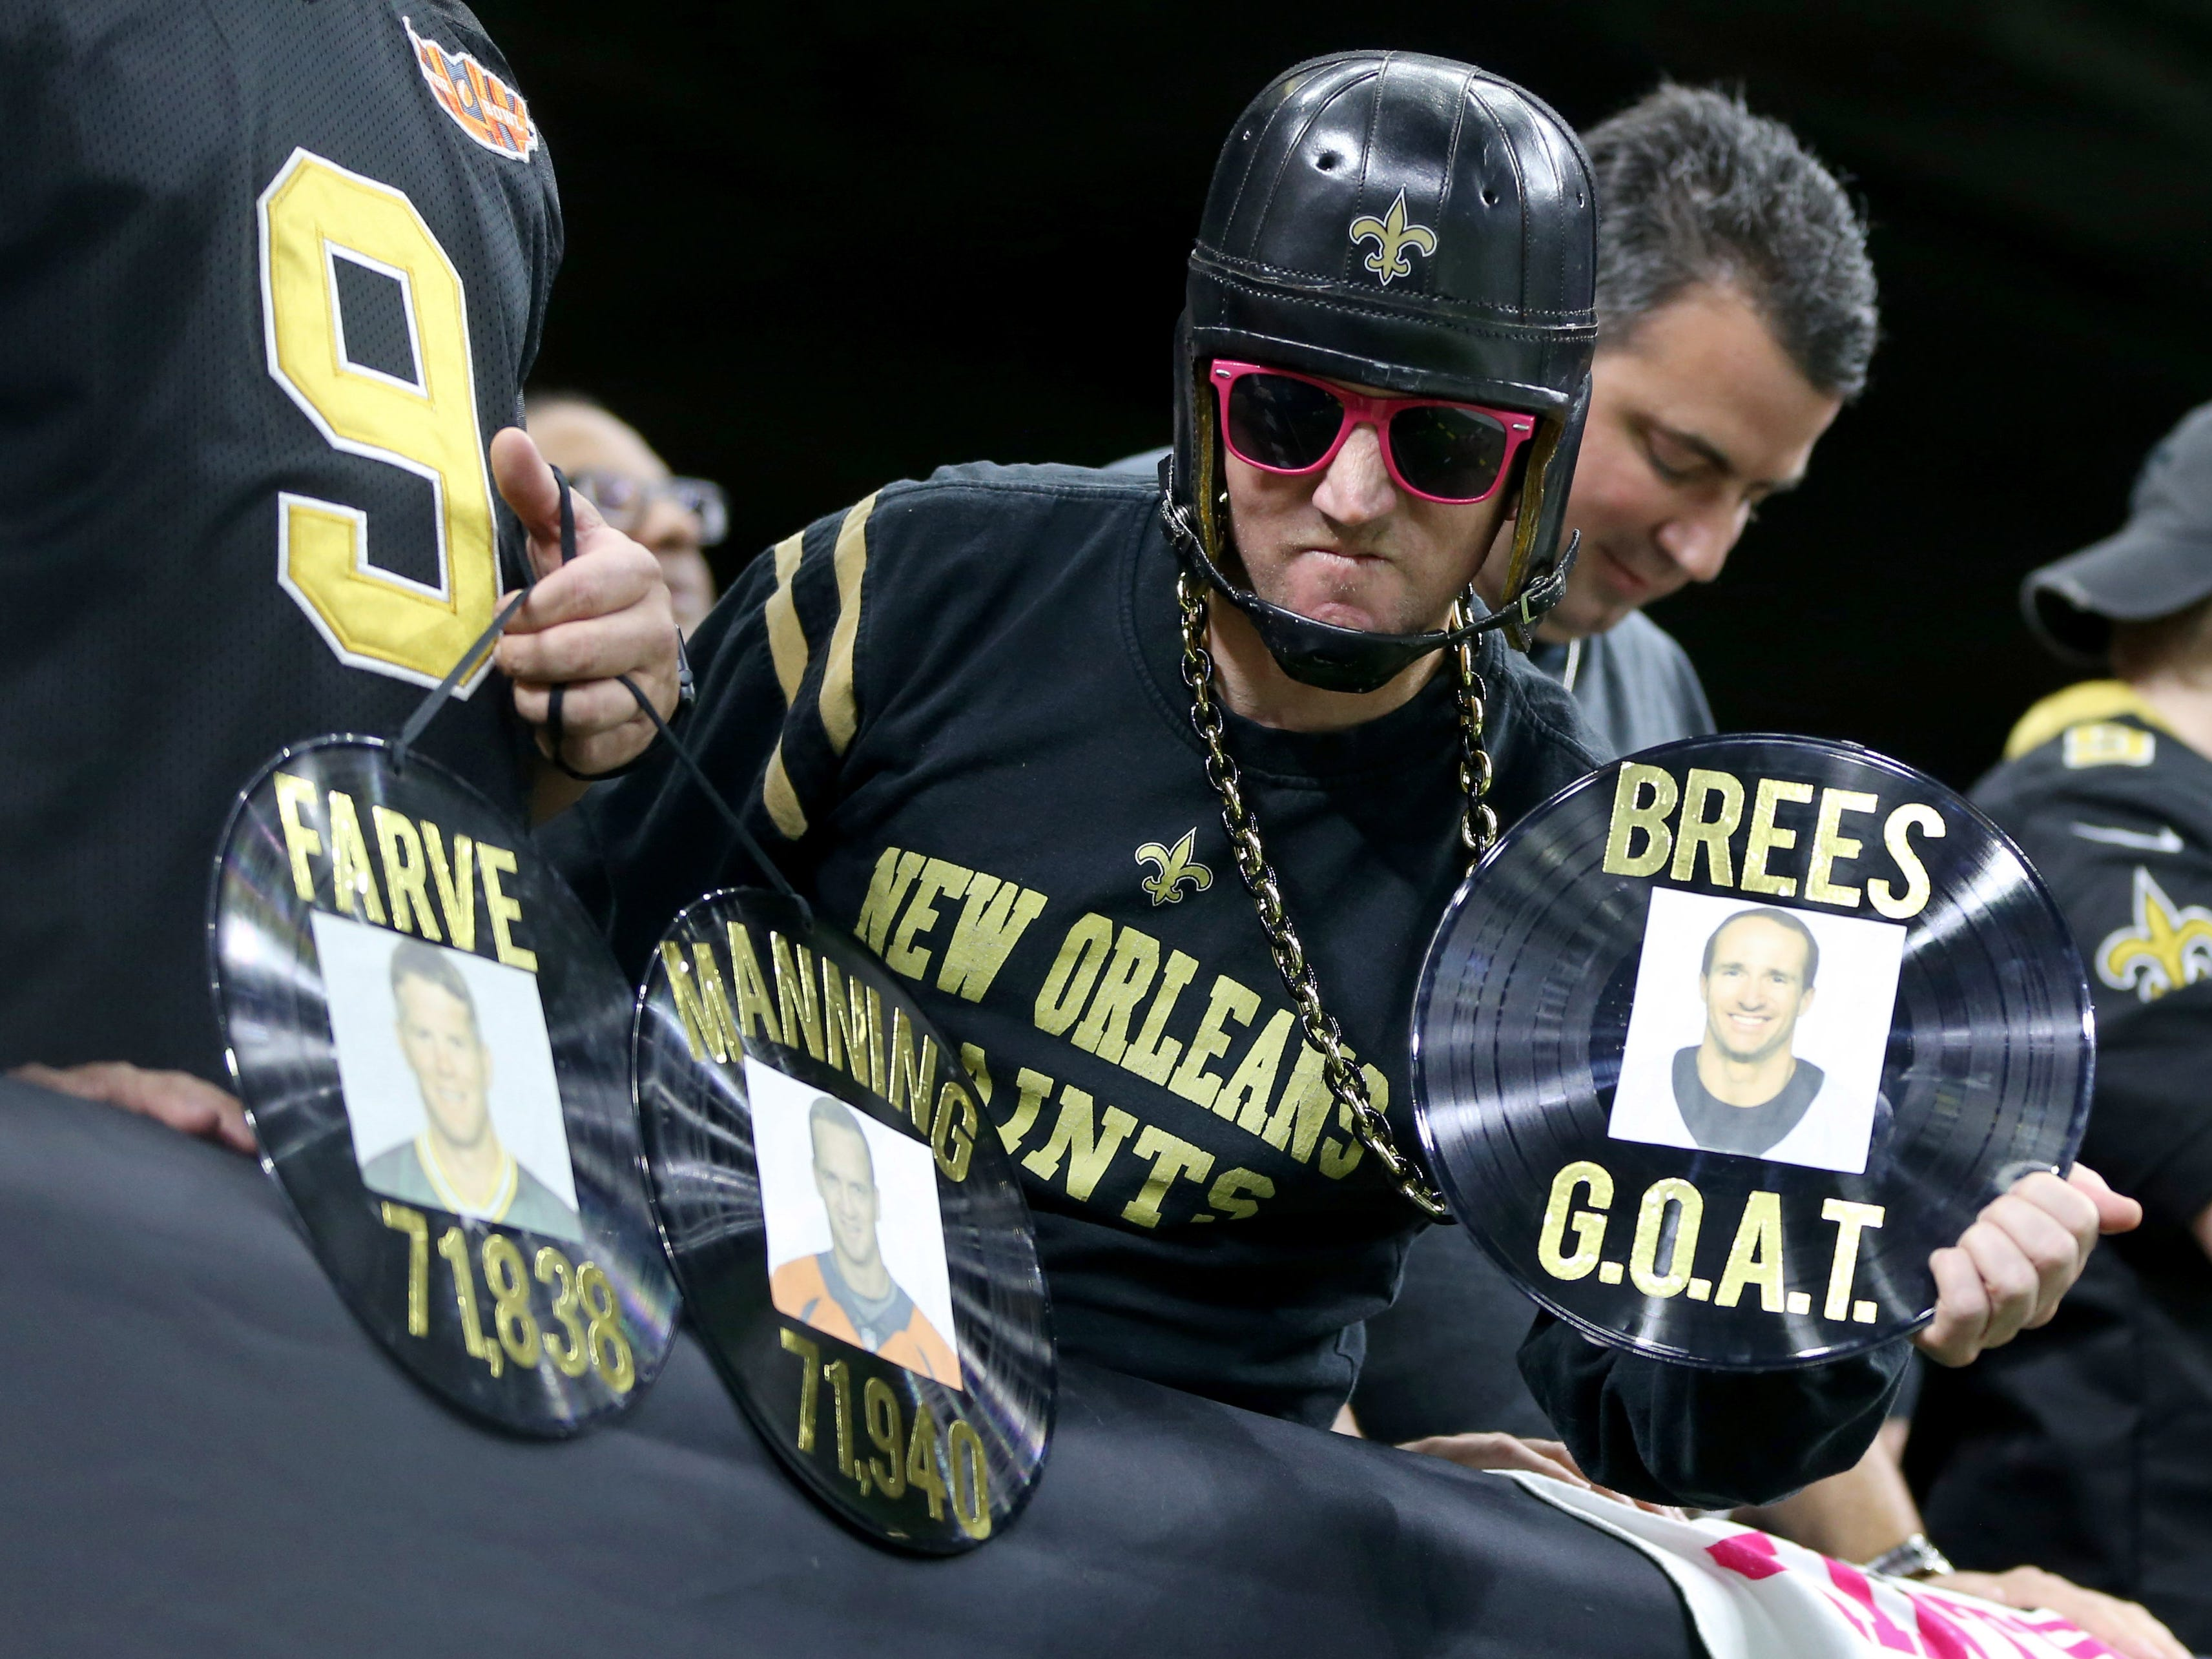 New Orleans Saints fans prepare to celebrate quarterback Drew Brees' NFL record for career passing yards, set against the Washington Redskins at the Mercedes-Benz Superdome.